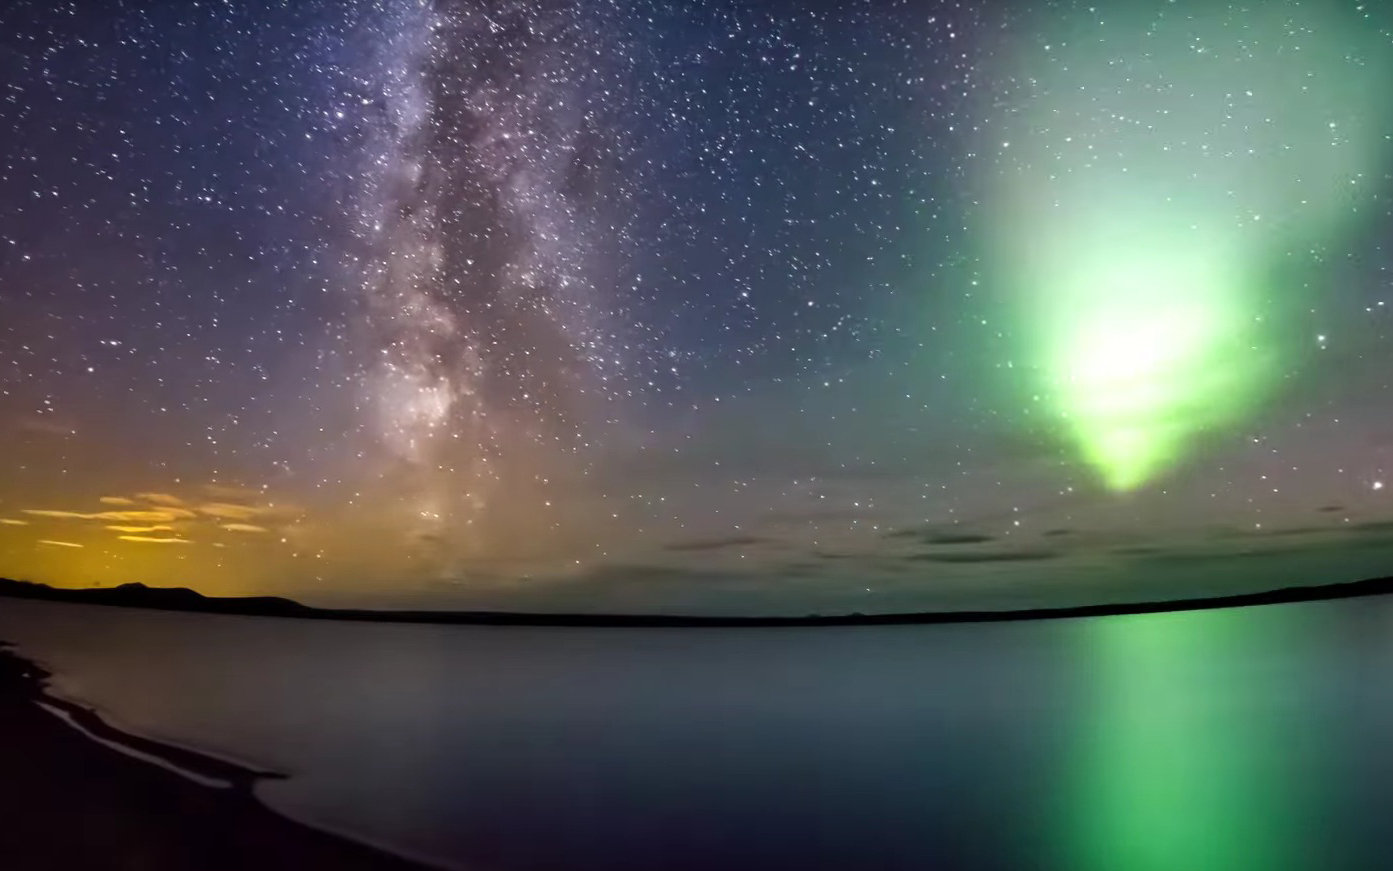 The Ultimate Photobomb: The Northern Lights Steal The Show in This Video of the Milky Way